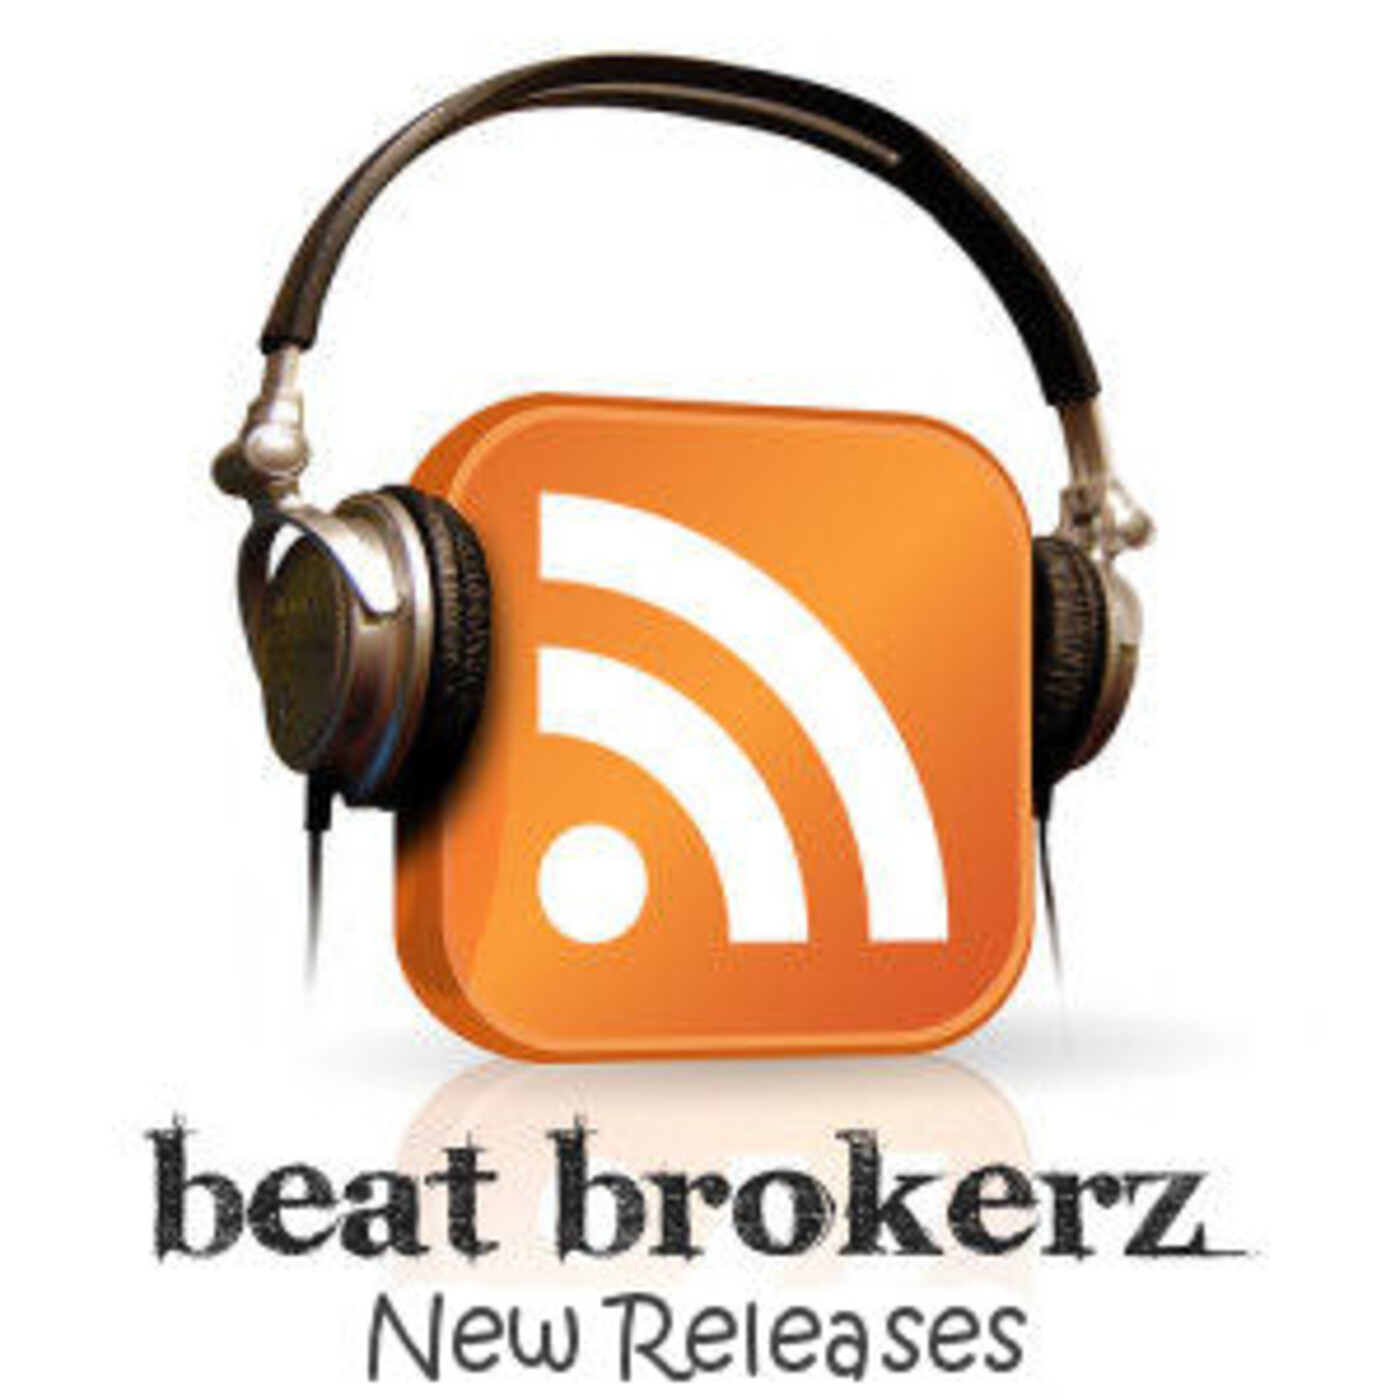 New Releases - Hip Hop & Rap Beats - beatbrokerz.c